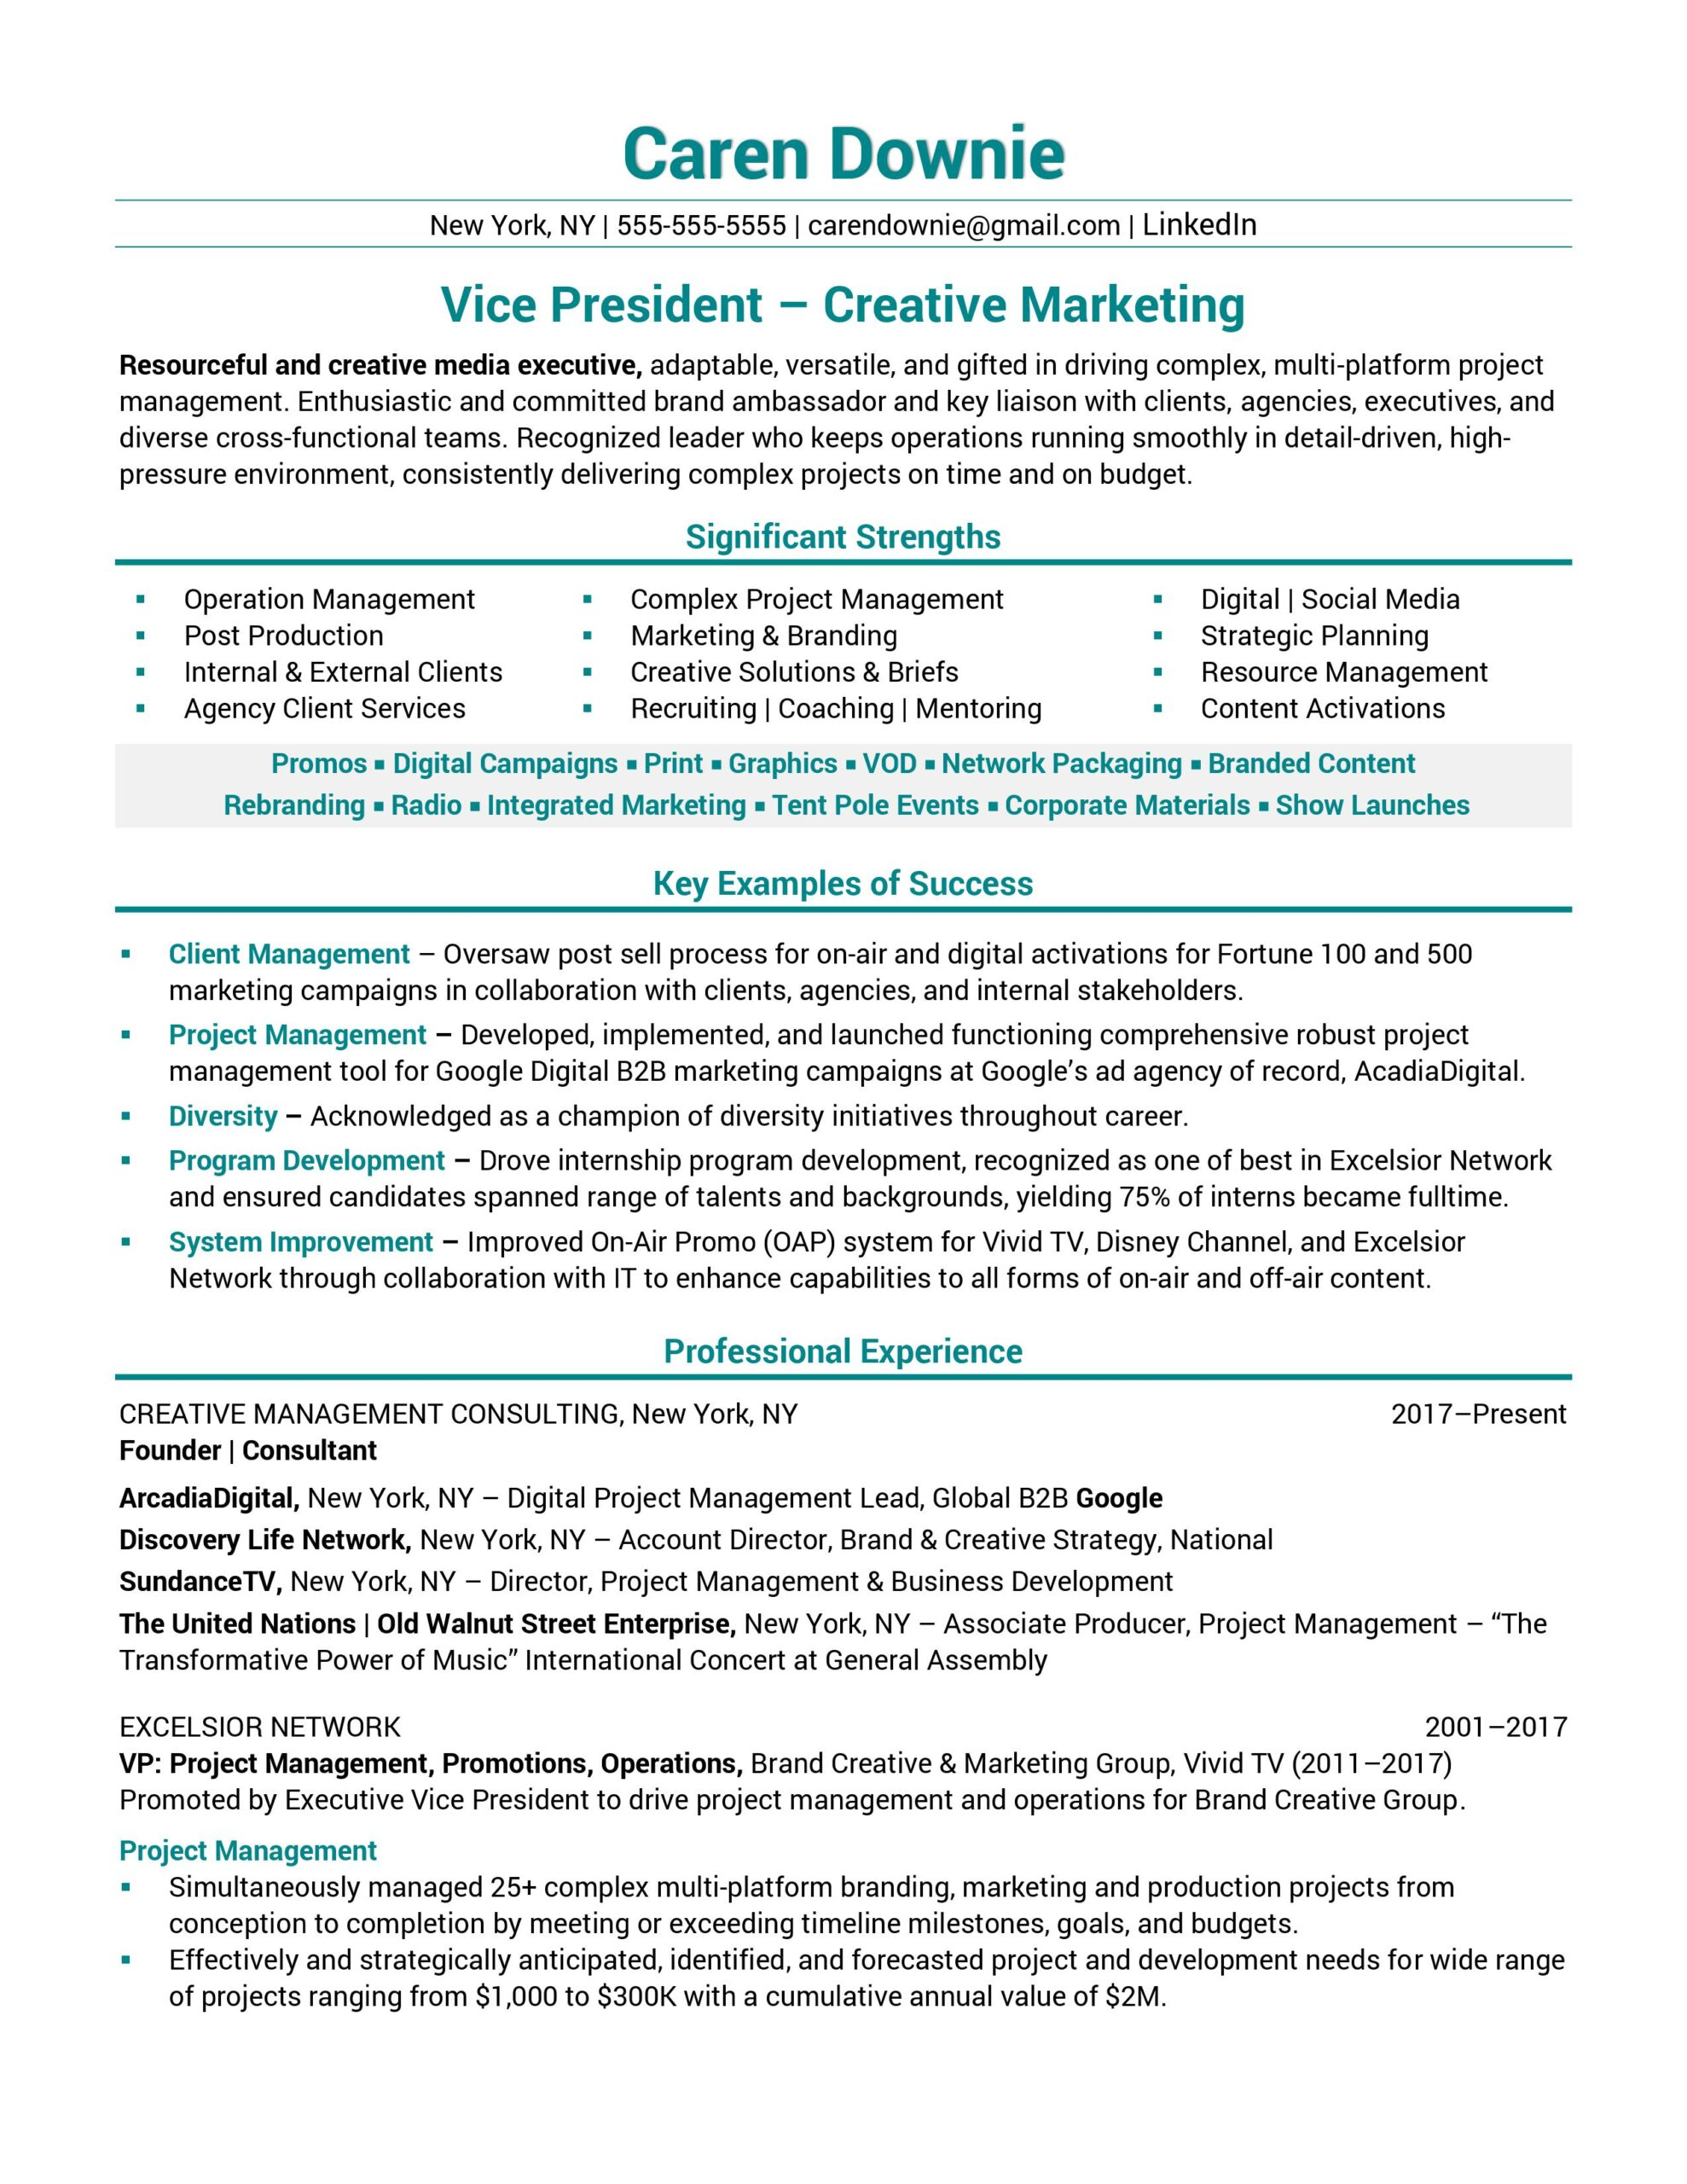 resume samples business transformation sample vice president creative marketing Resume Business Transformation Resume Sample